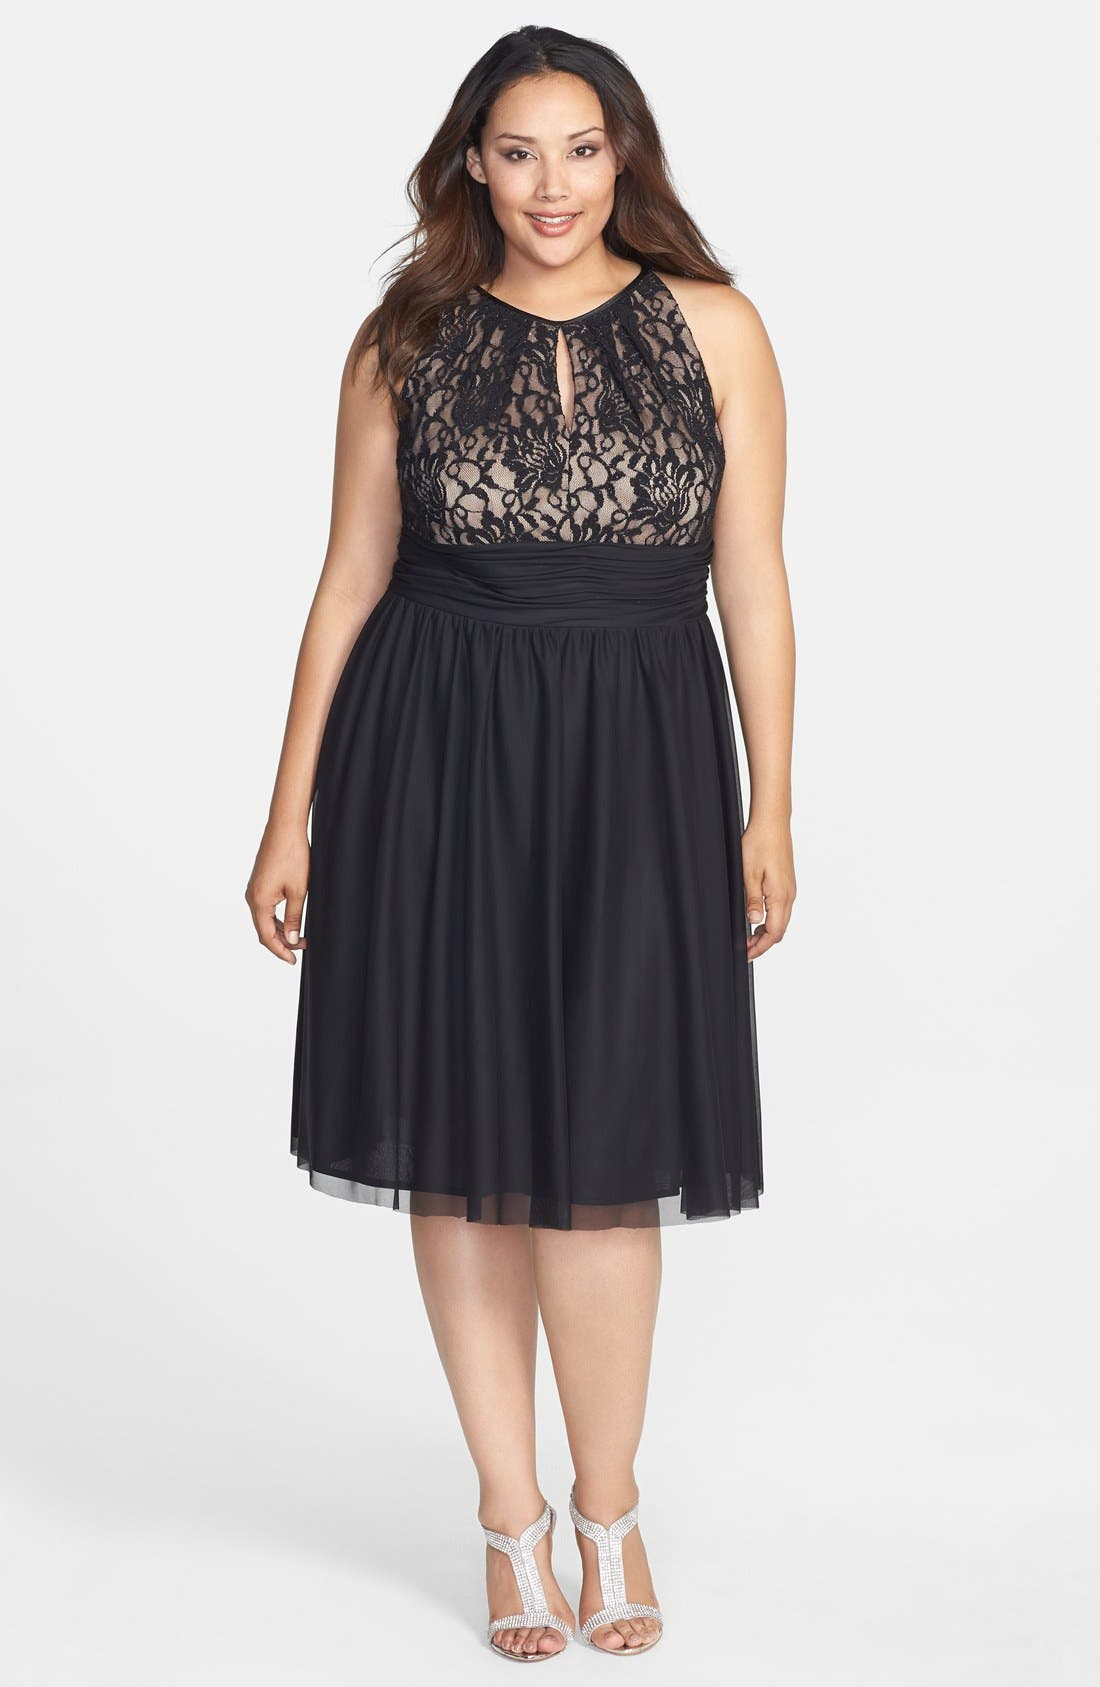 Alternate Image 1 Selected - Jessica Howard Beaded Waist Fit & Flare Dress (Plus Size)